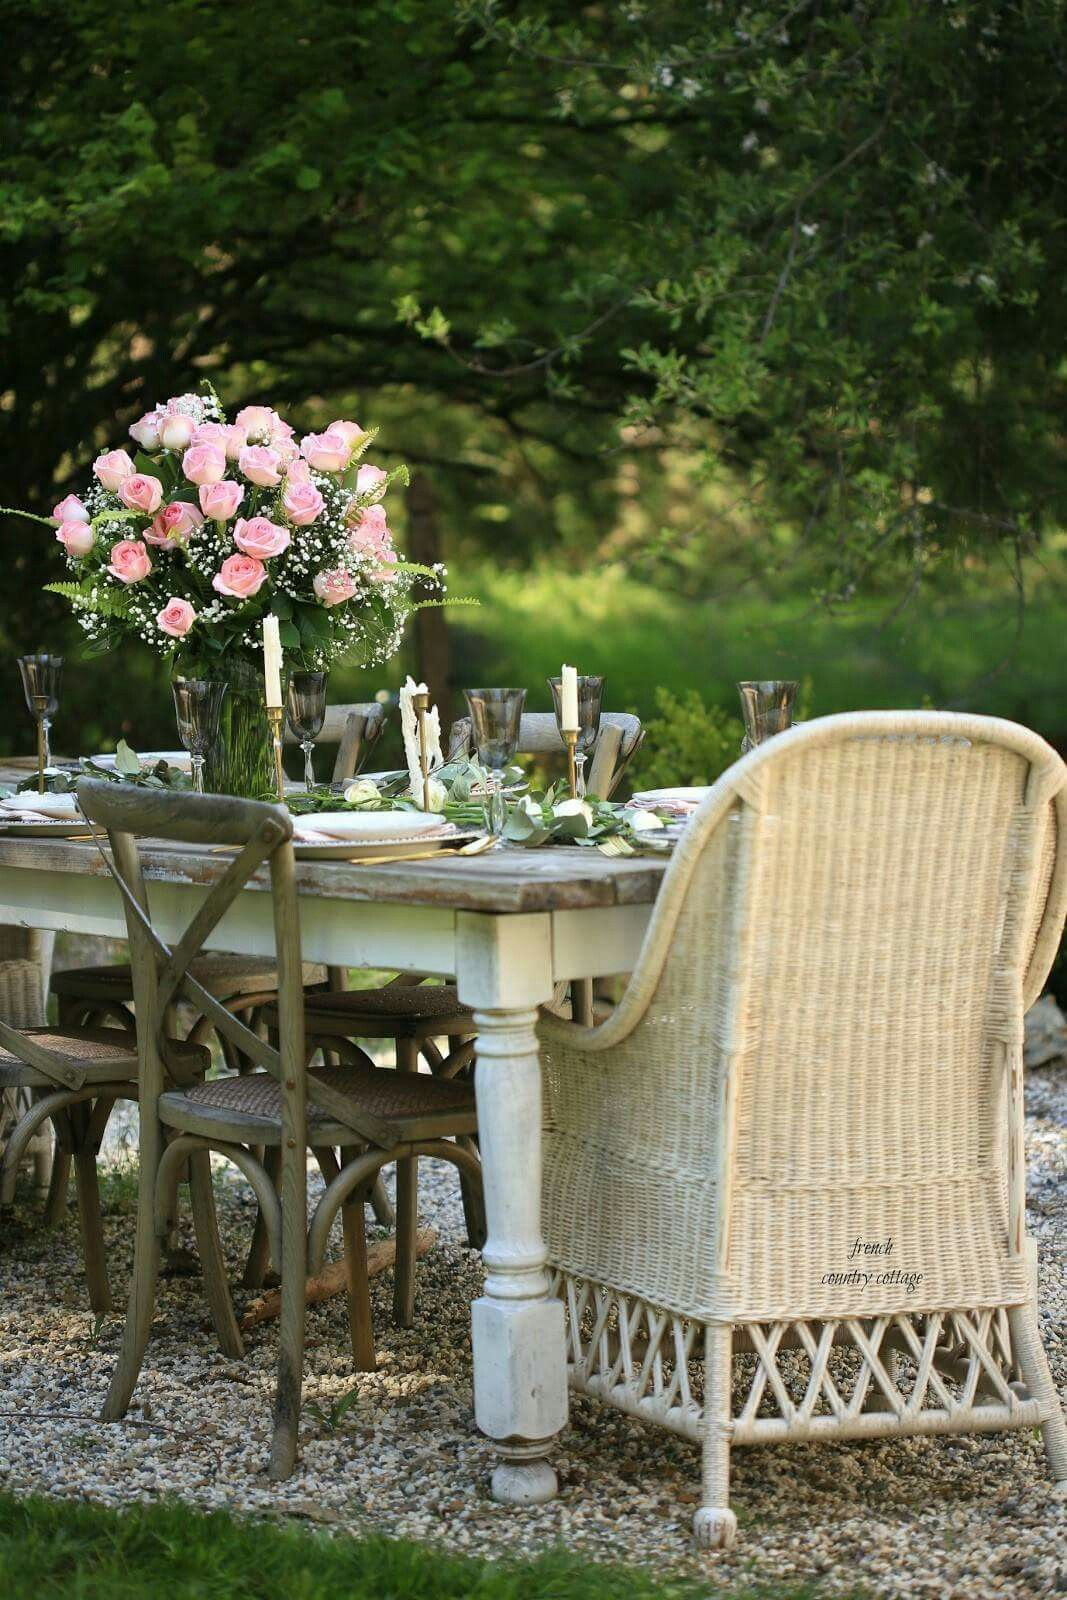 Pin By Paula Lovell Thompson On Favorite Places Spaces Country Cottage Decor Outdoor Furniture Sets